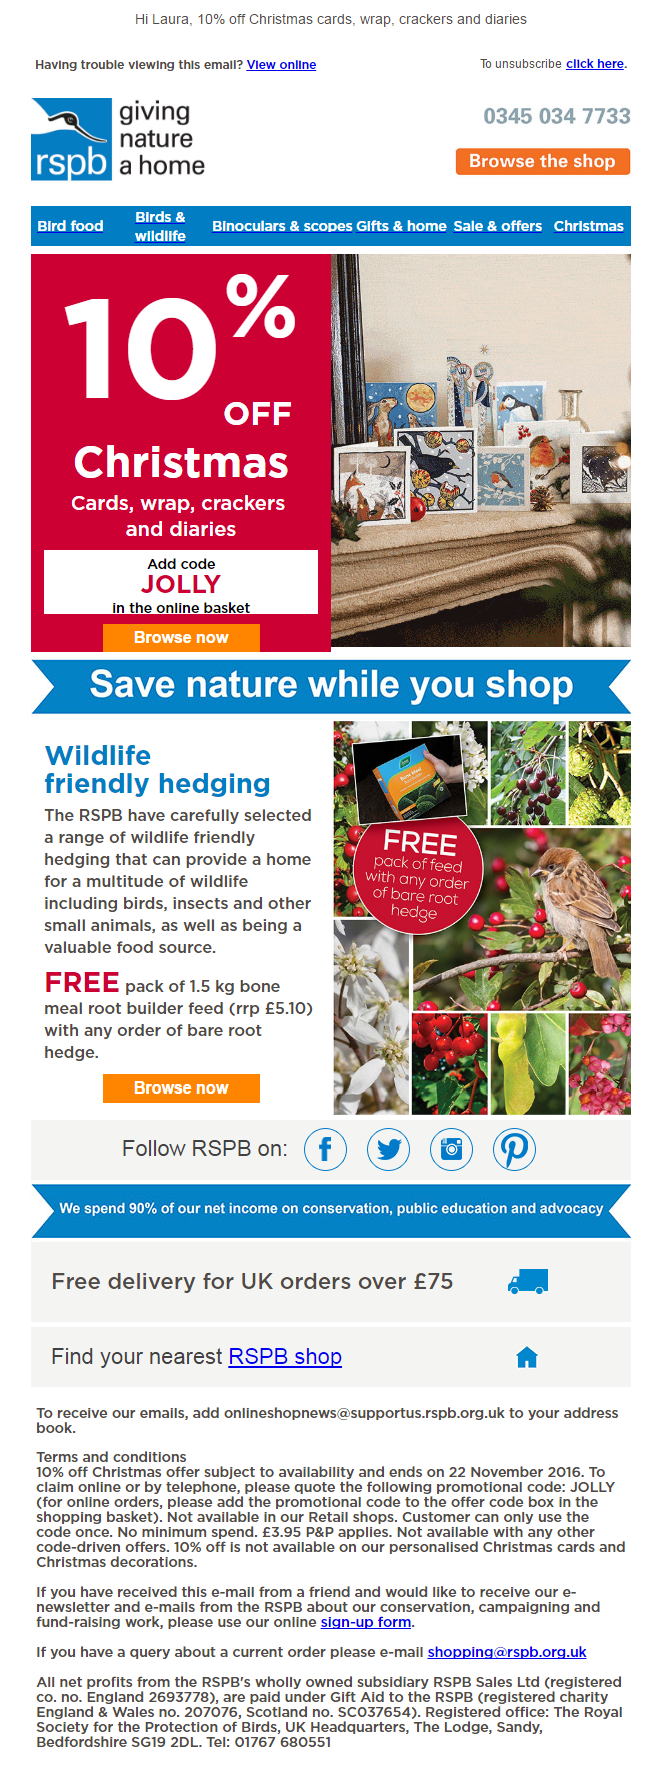 10 off christmas offer and discount code from rspb 10 off christmas offer and discount code from rspb emailmarketing email marketing